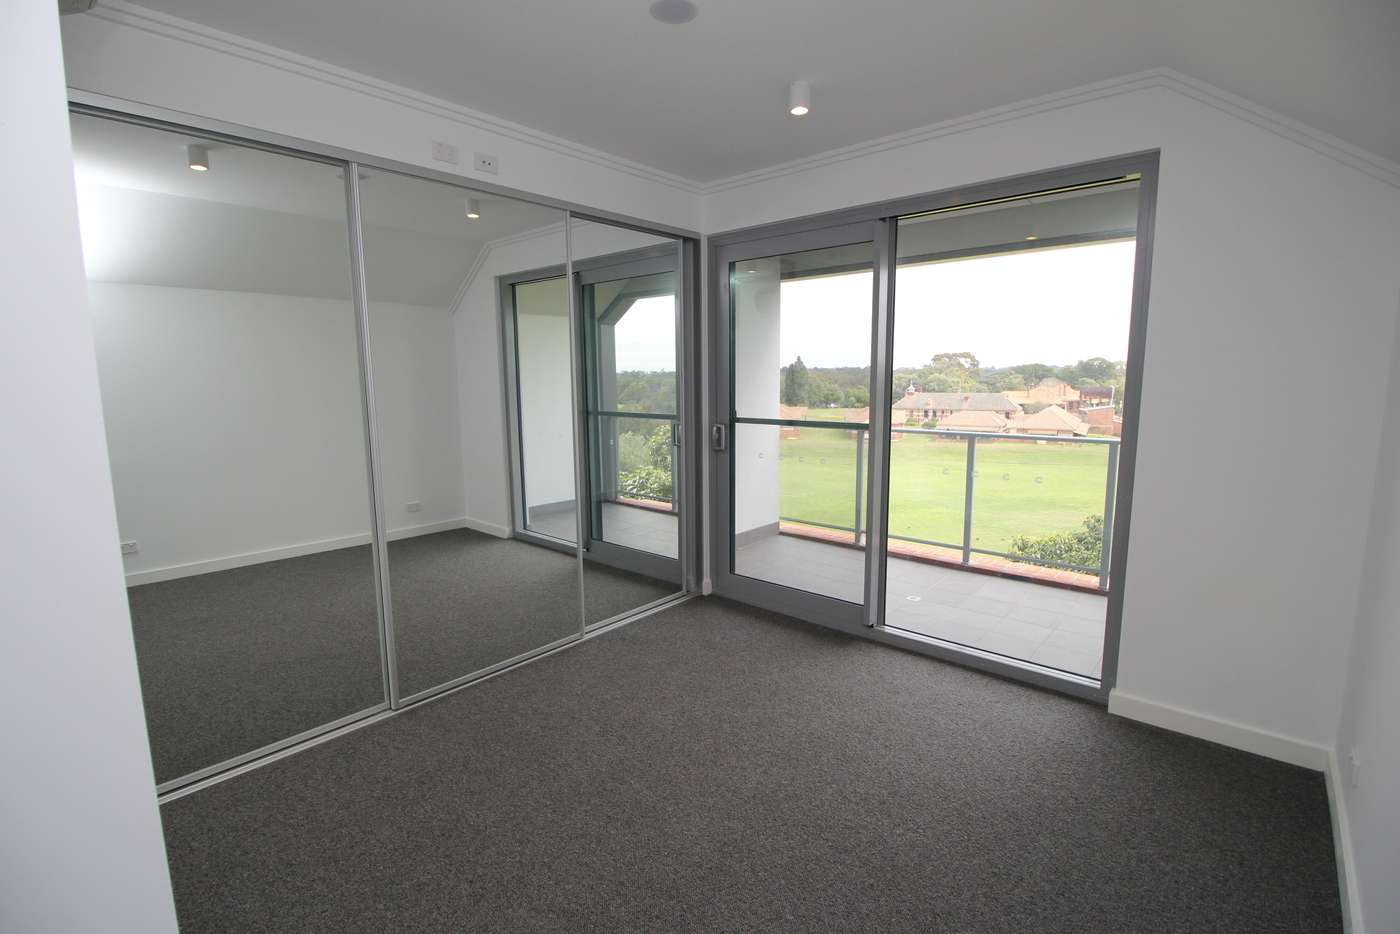 Seventh view of Homely apartment listing, 17/110 Terrace Road, Guildford WA 6055